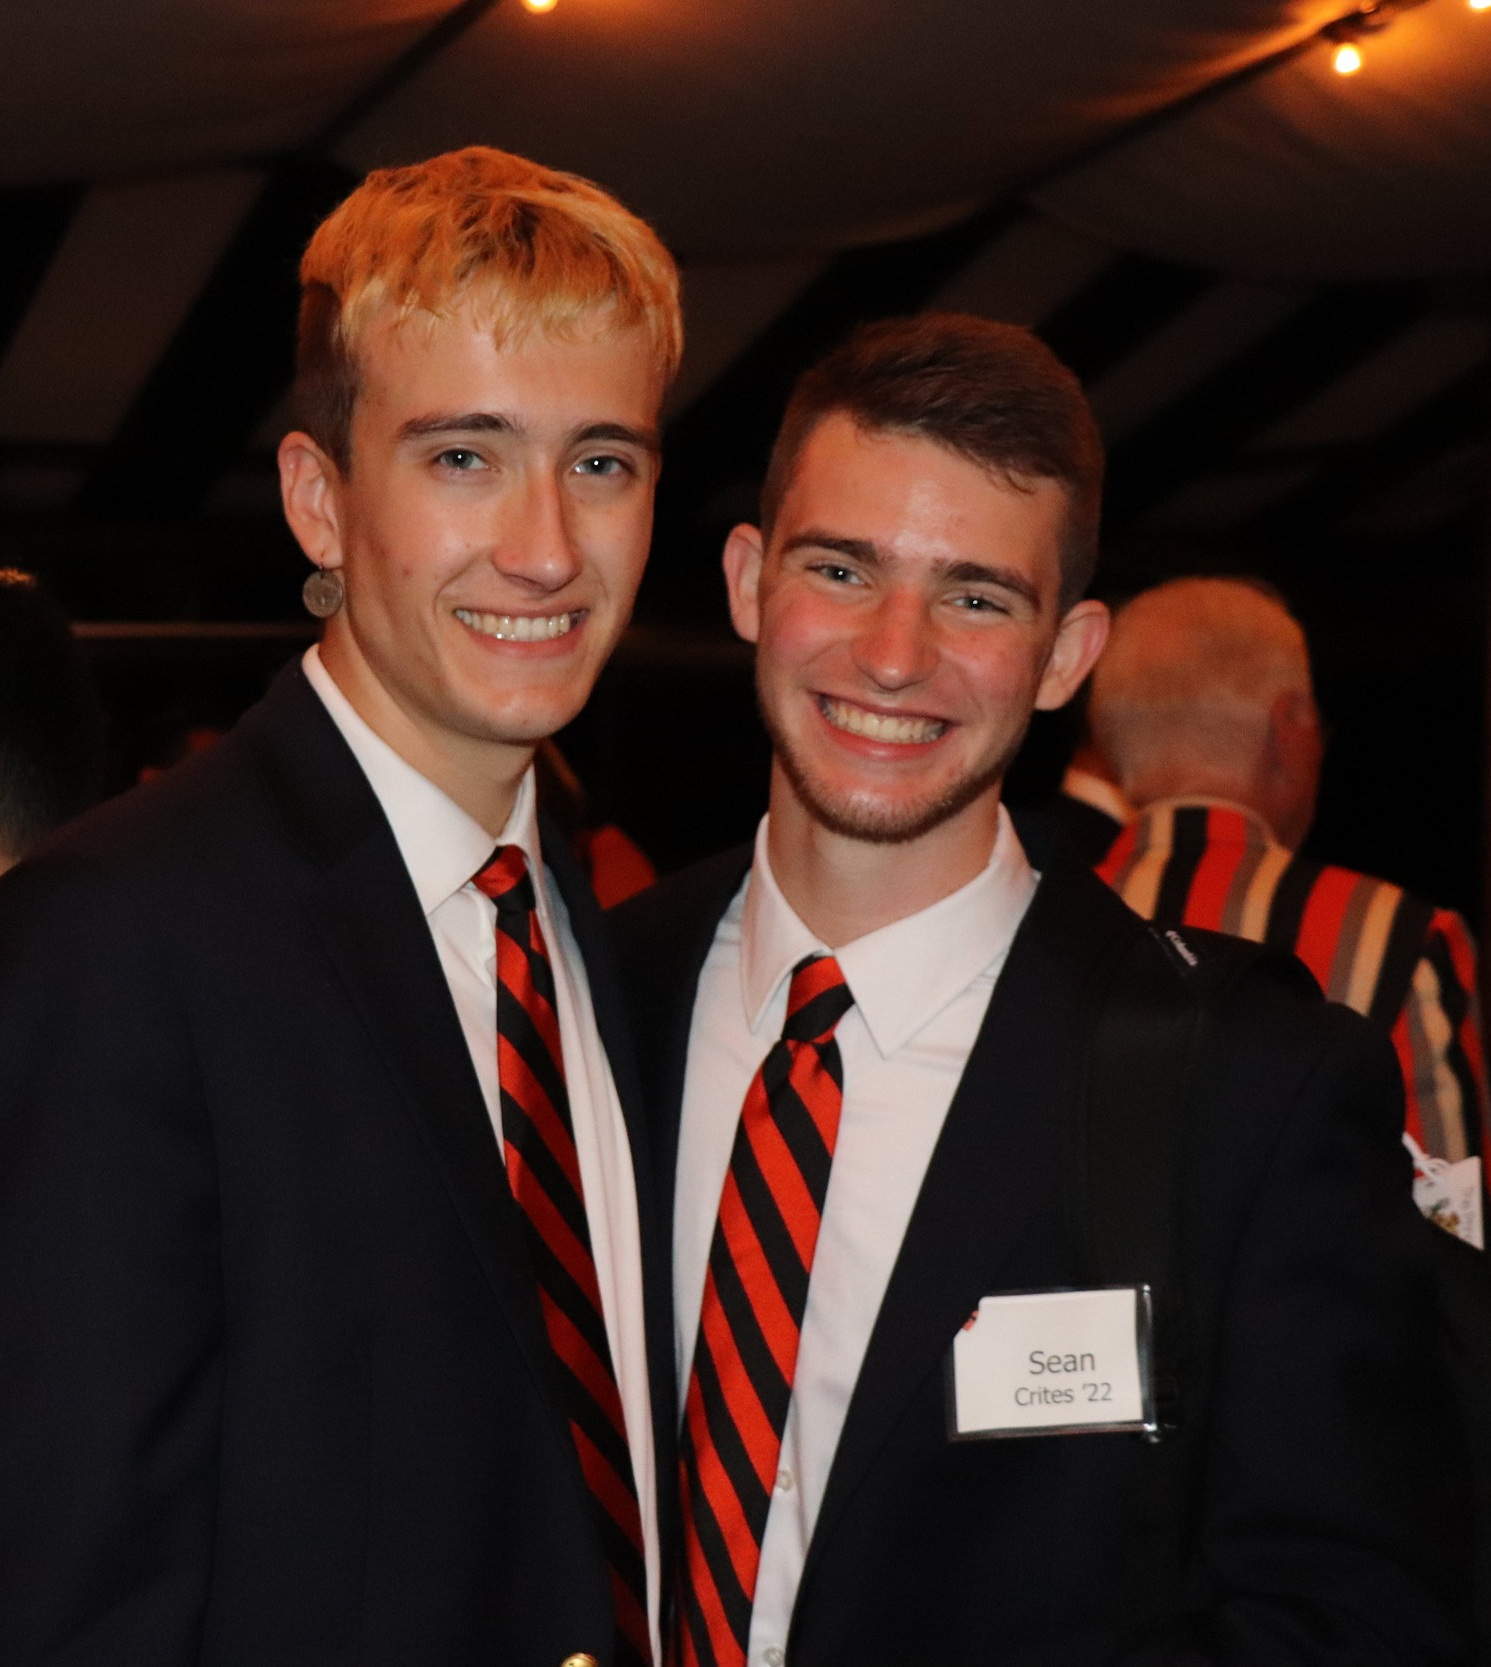 Freshmen David and Sean at the Princeton Club of San Diego's annual dinner